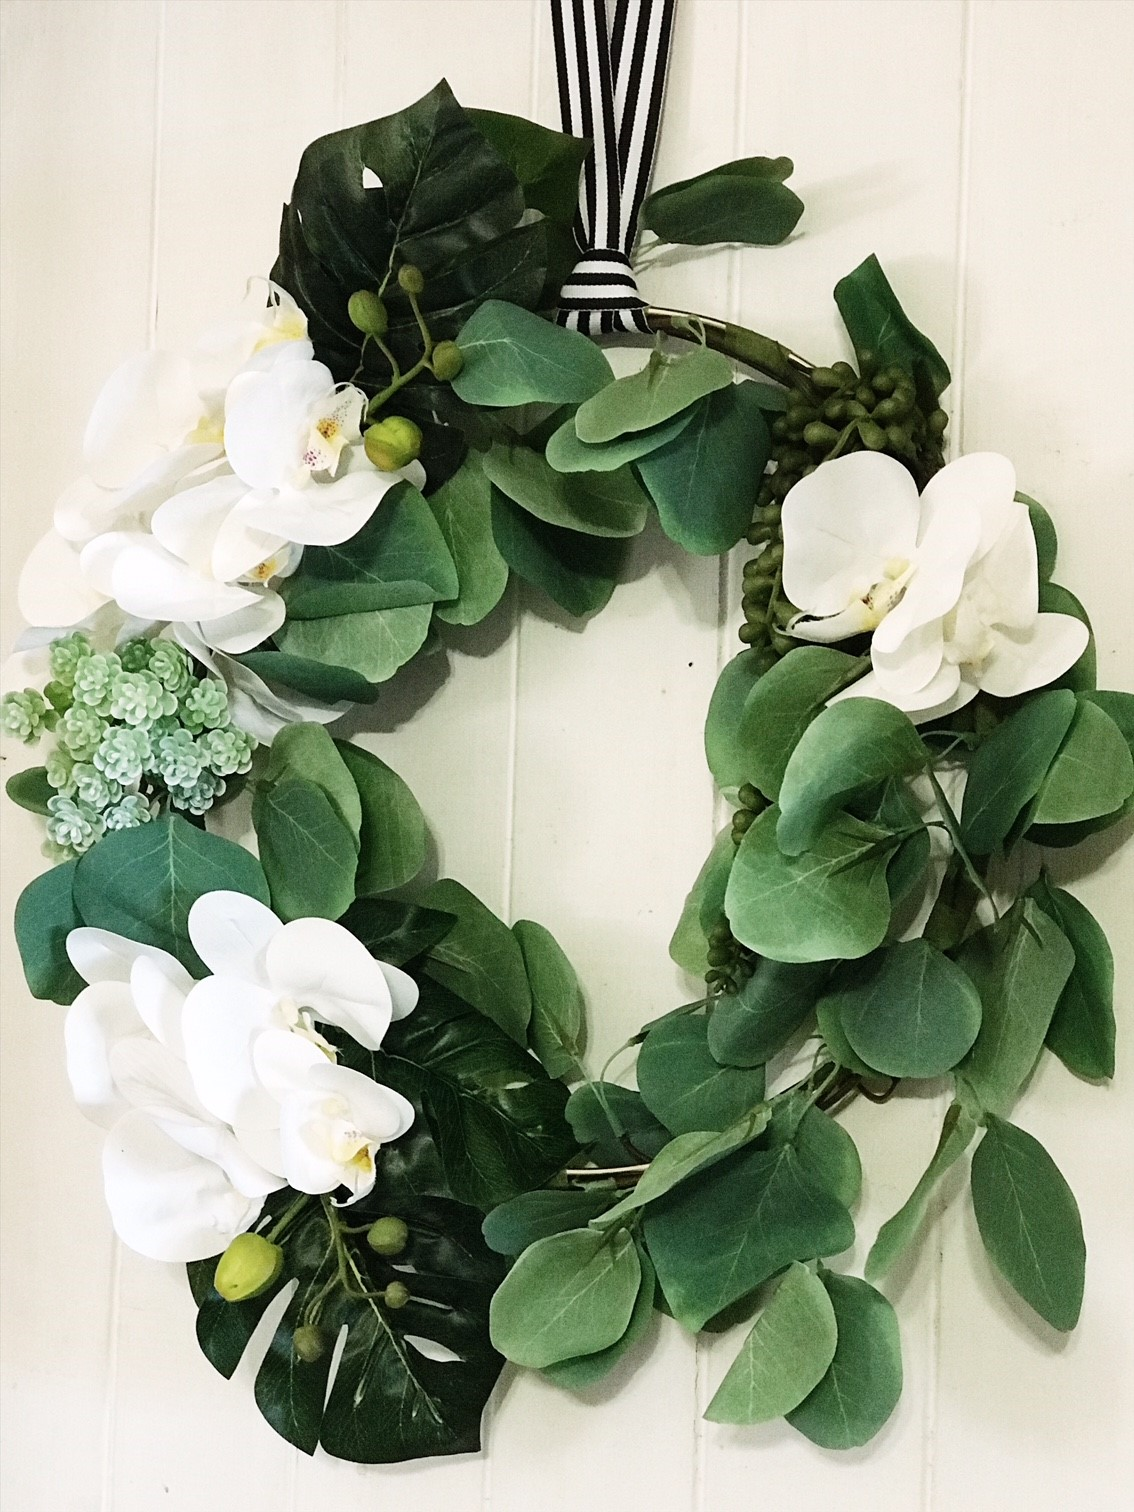 A DIY Tropical Wreath for Christmas - gorgeous faux leaves and succulents with orchids